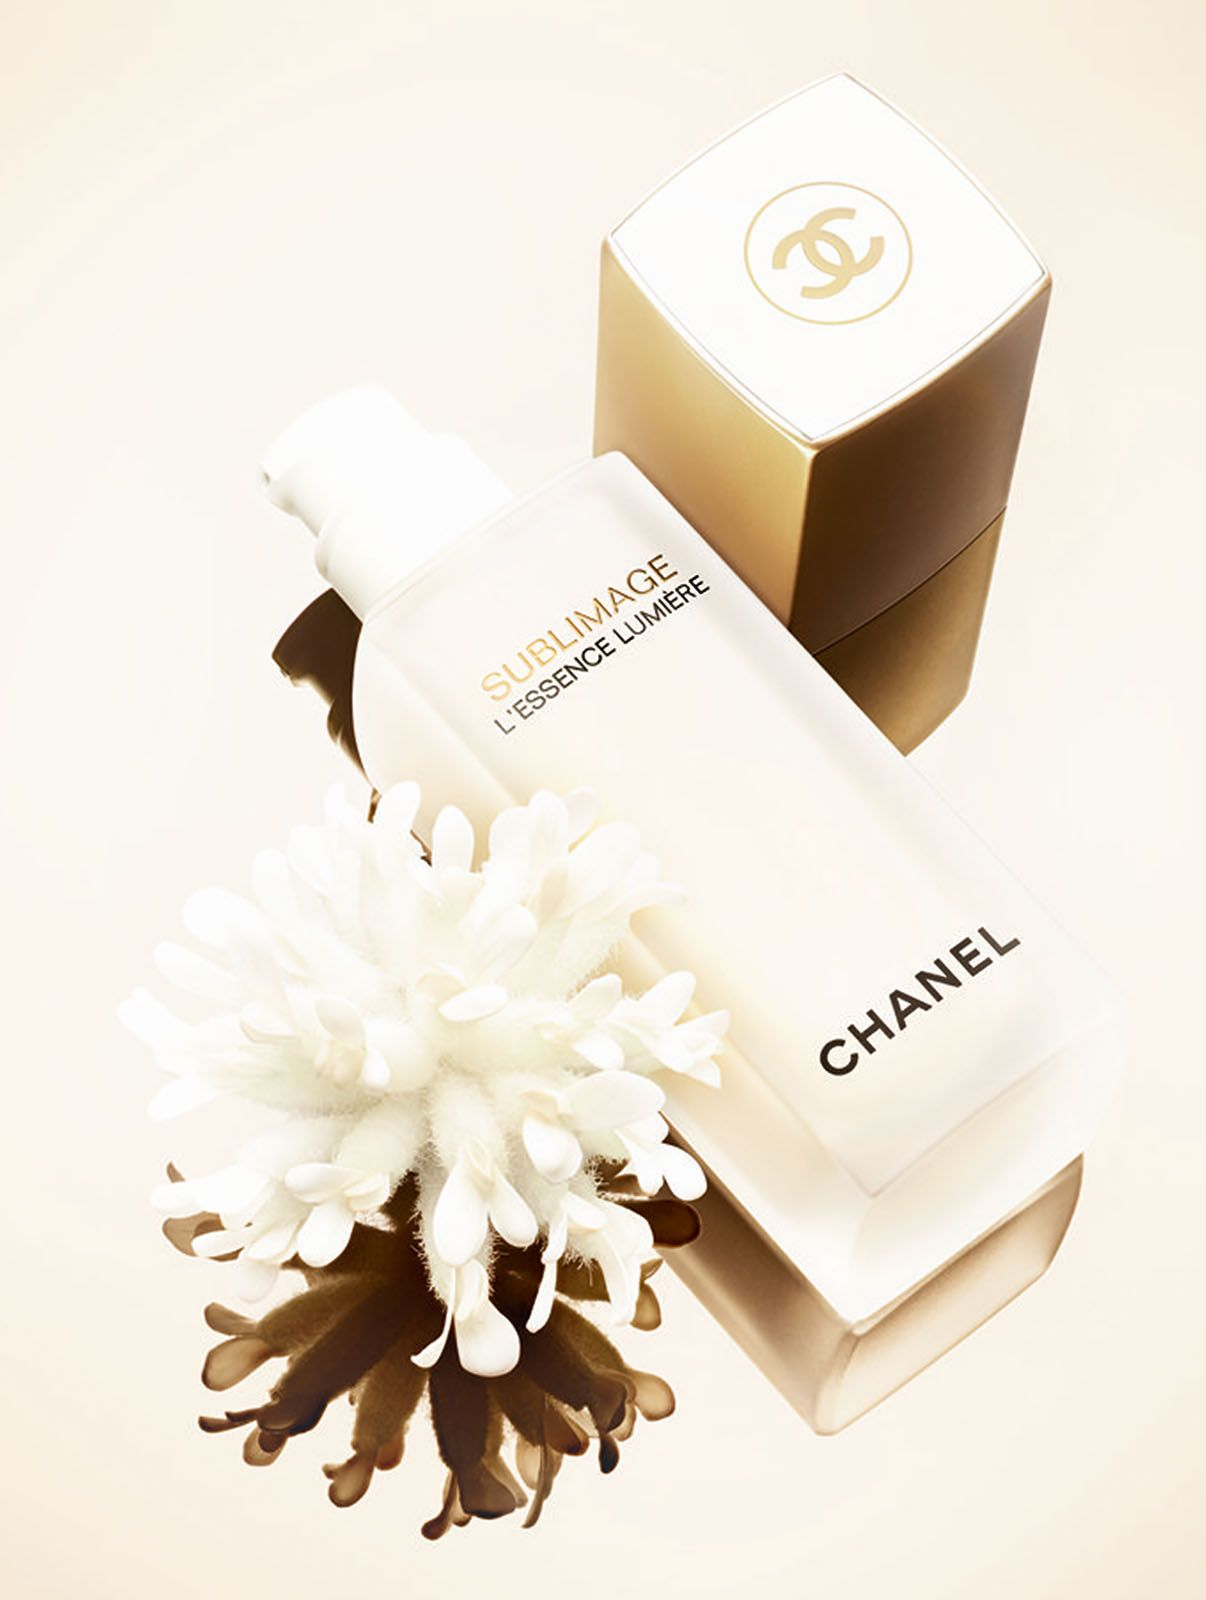 The new Sublimage L'Essence Lumière is a global serum that helps restore radiance to skin